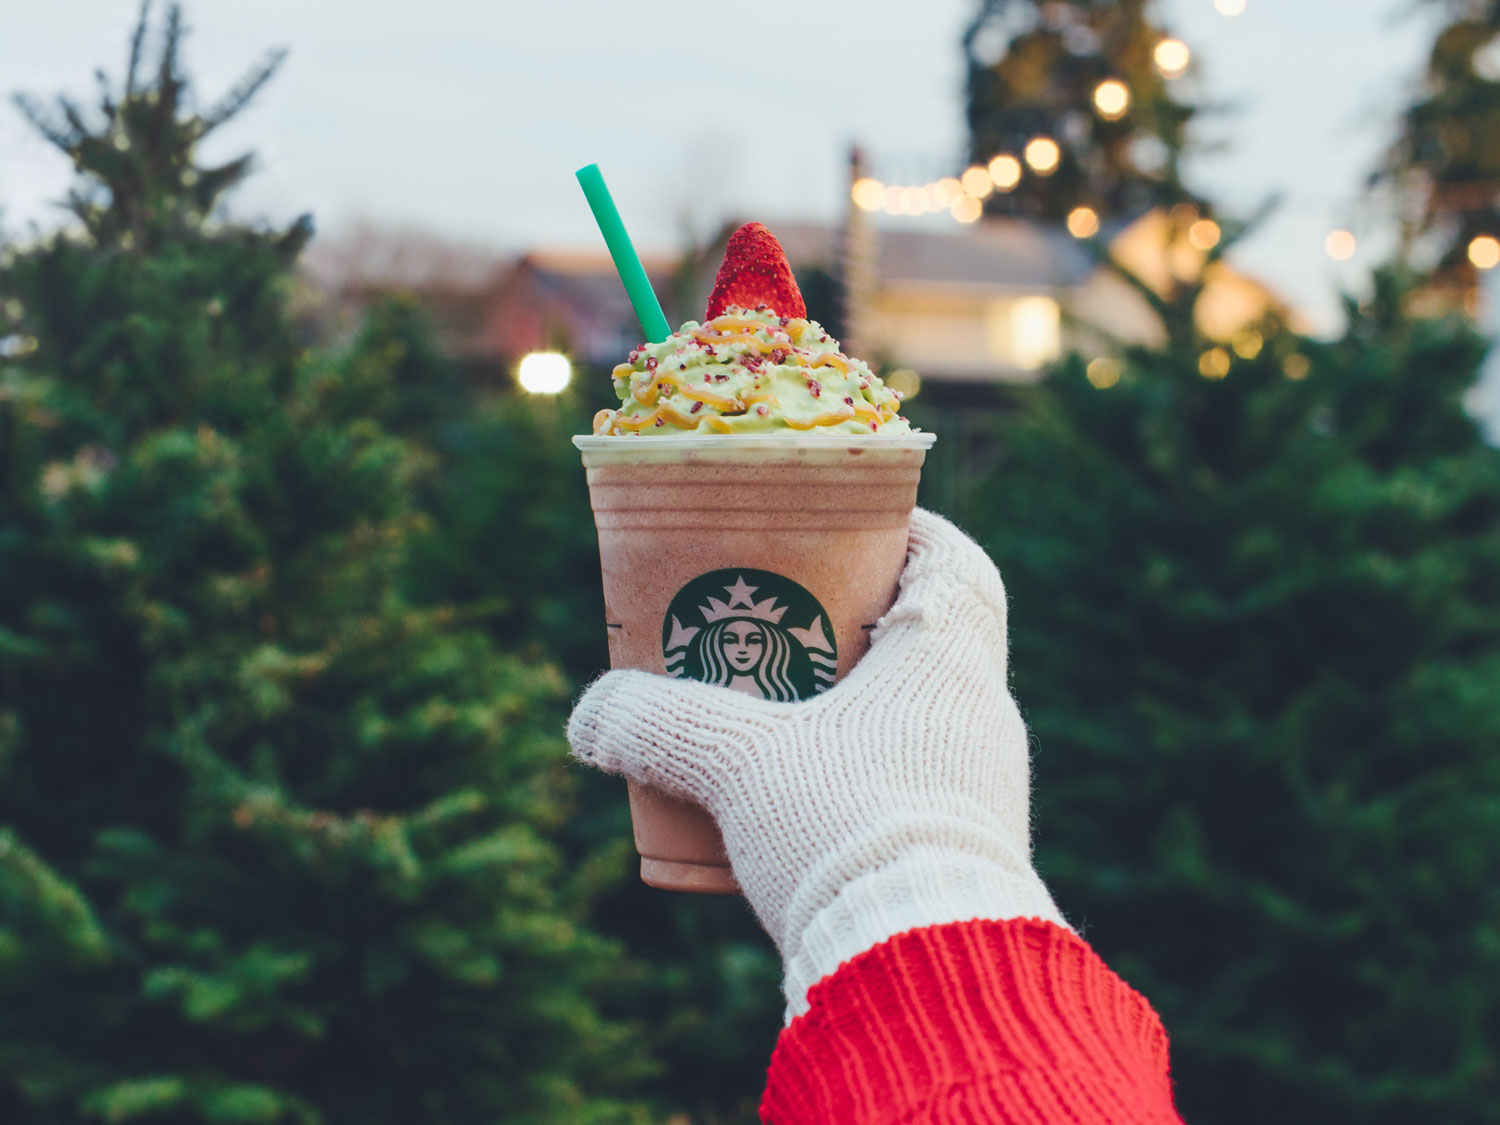 Starbucks' Christmas Tree Frappuccino Joins the Holiday Menu for a Limited Time